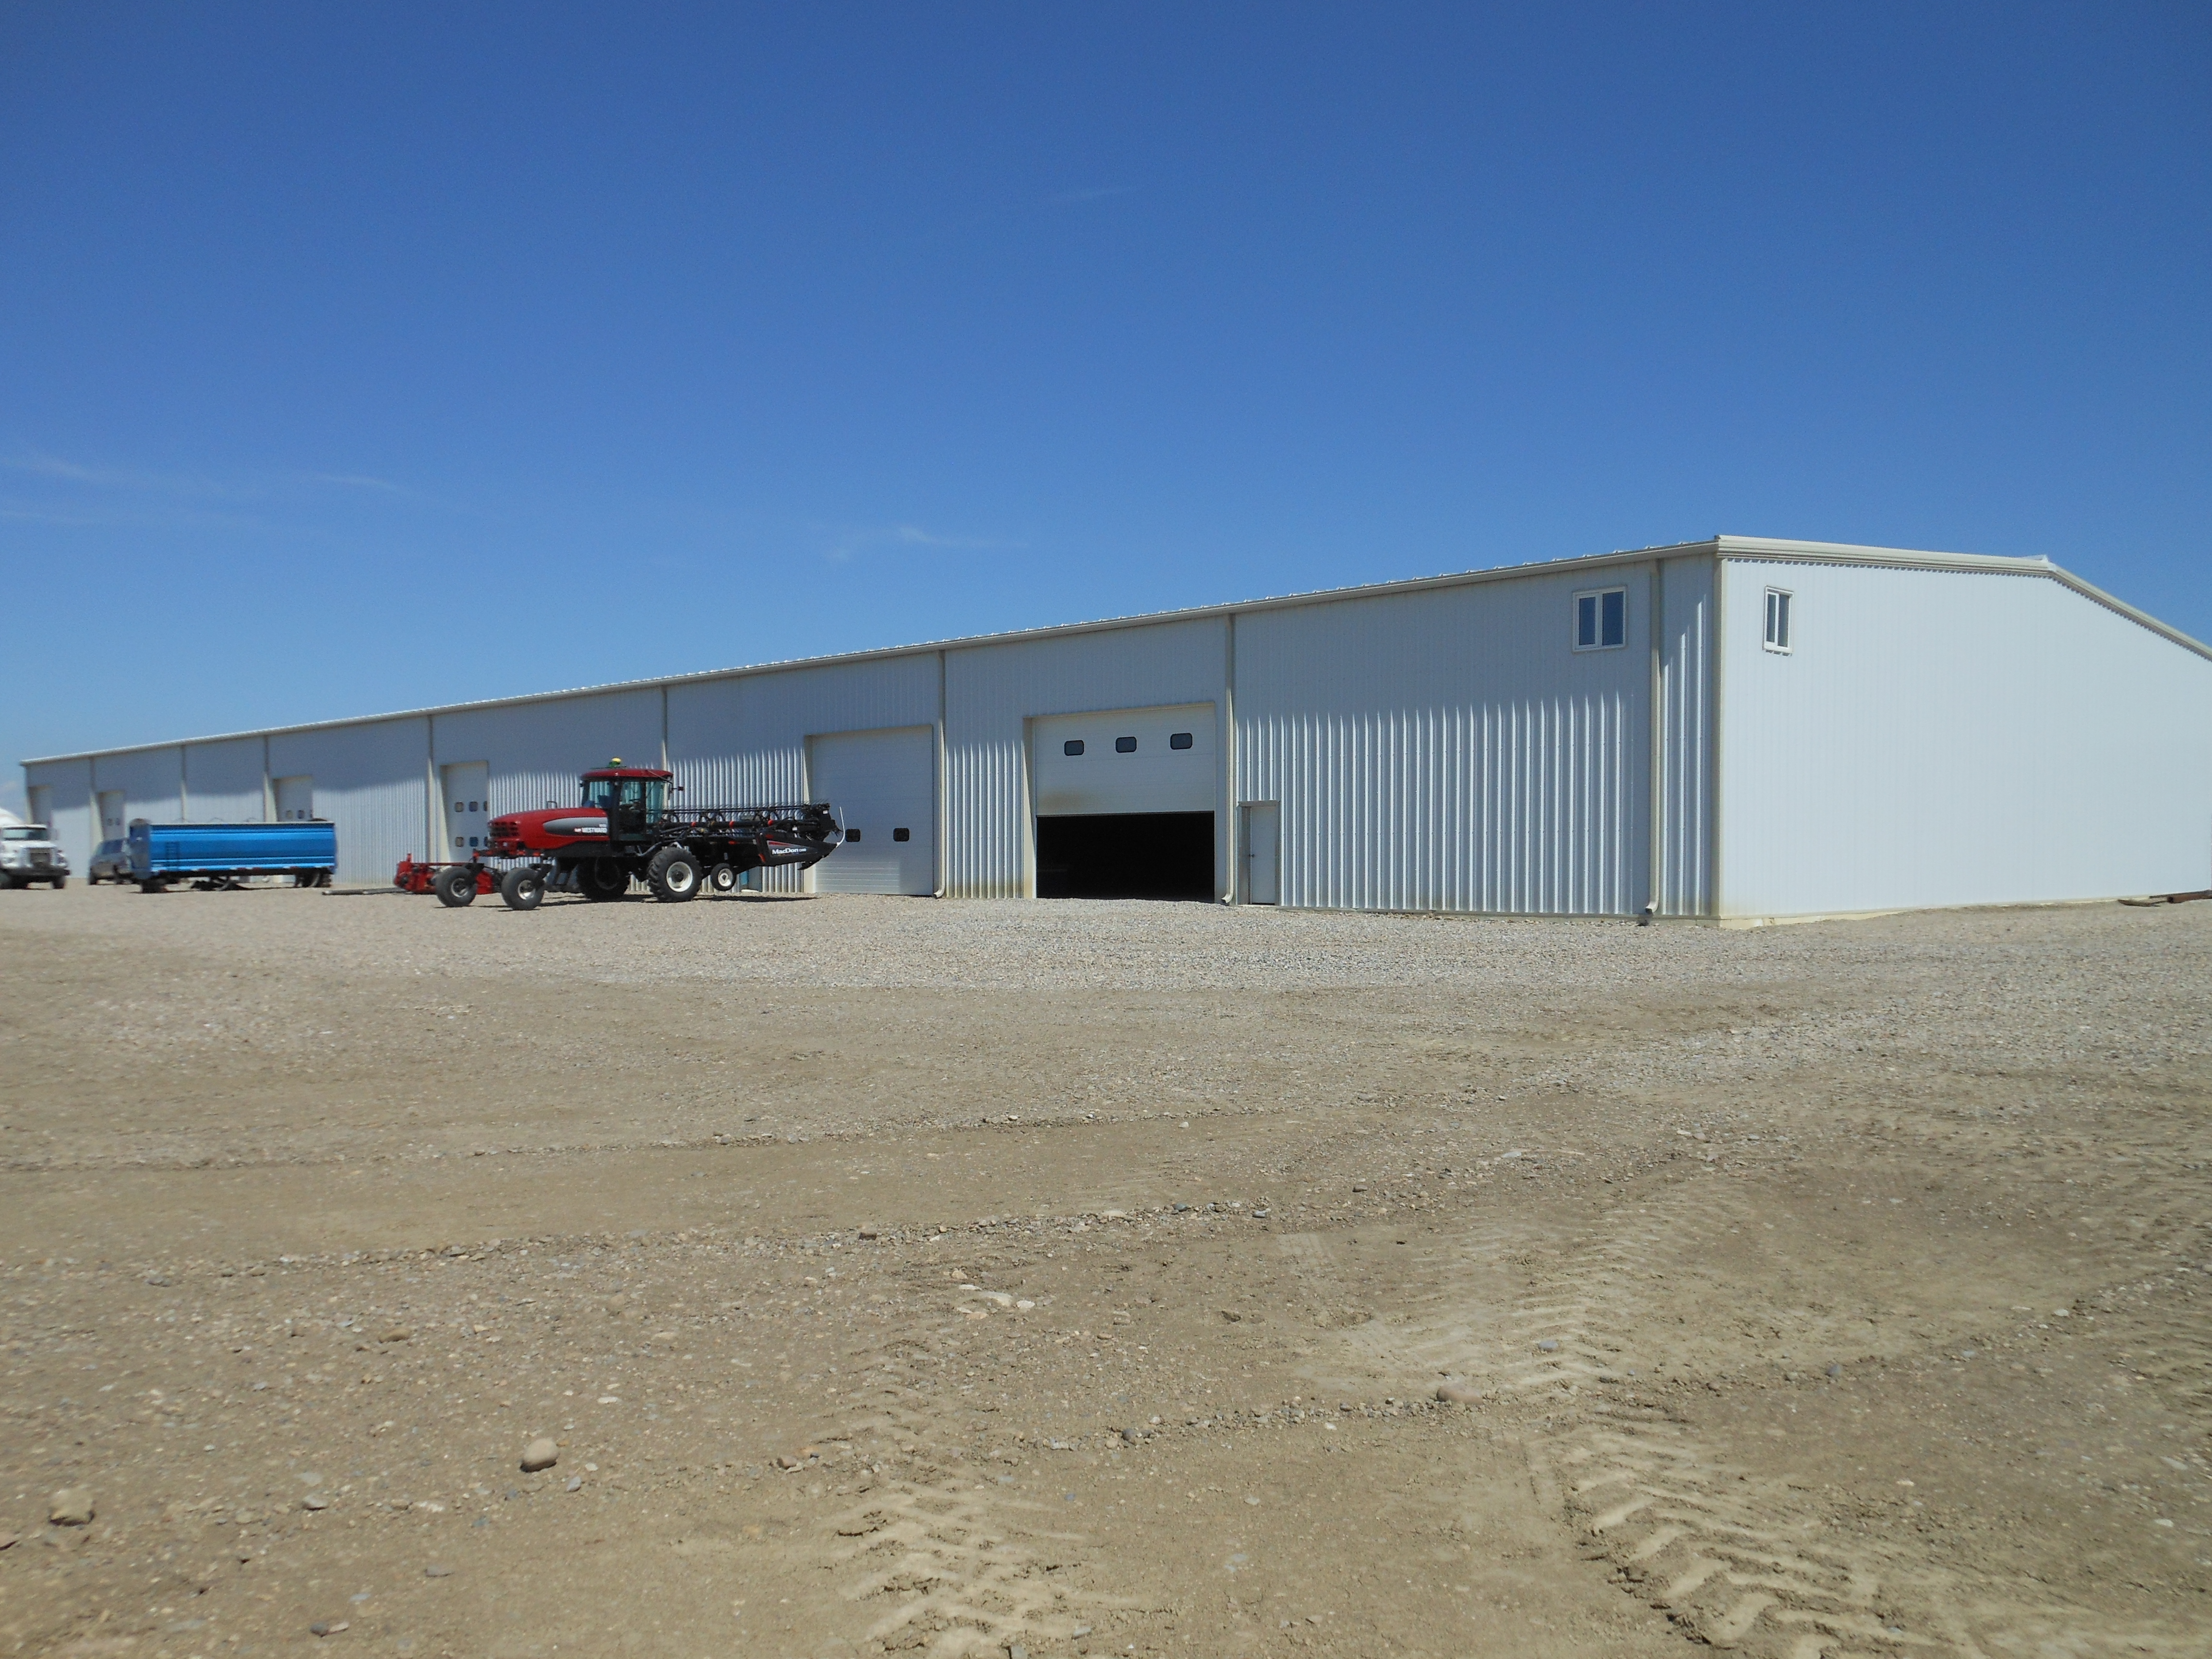 Magrath, Alberta - Deerfield Farms